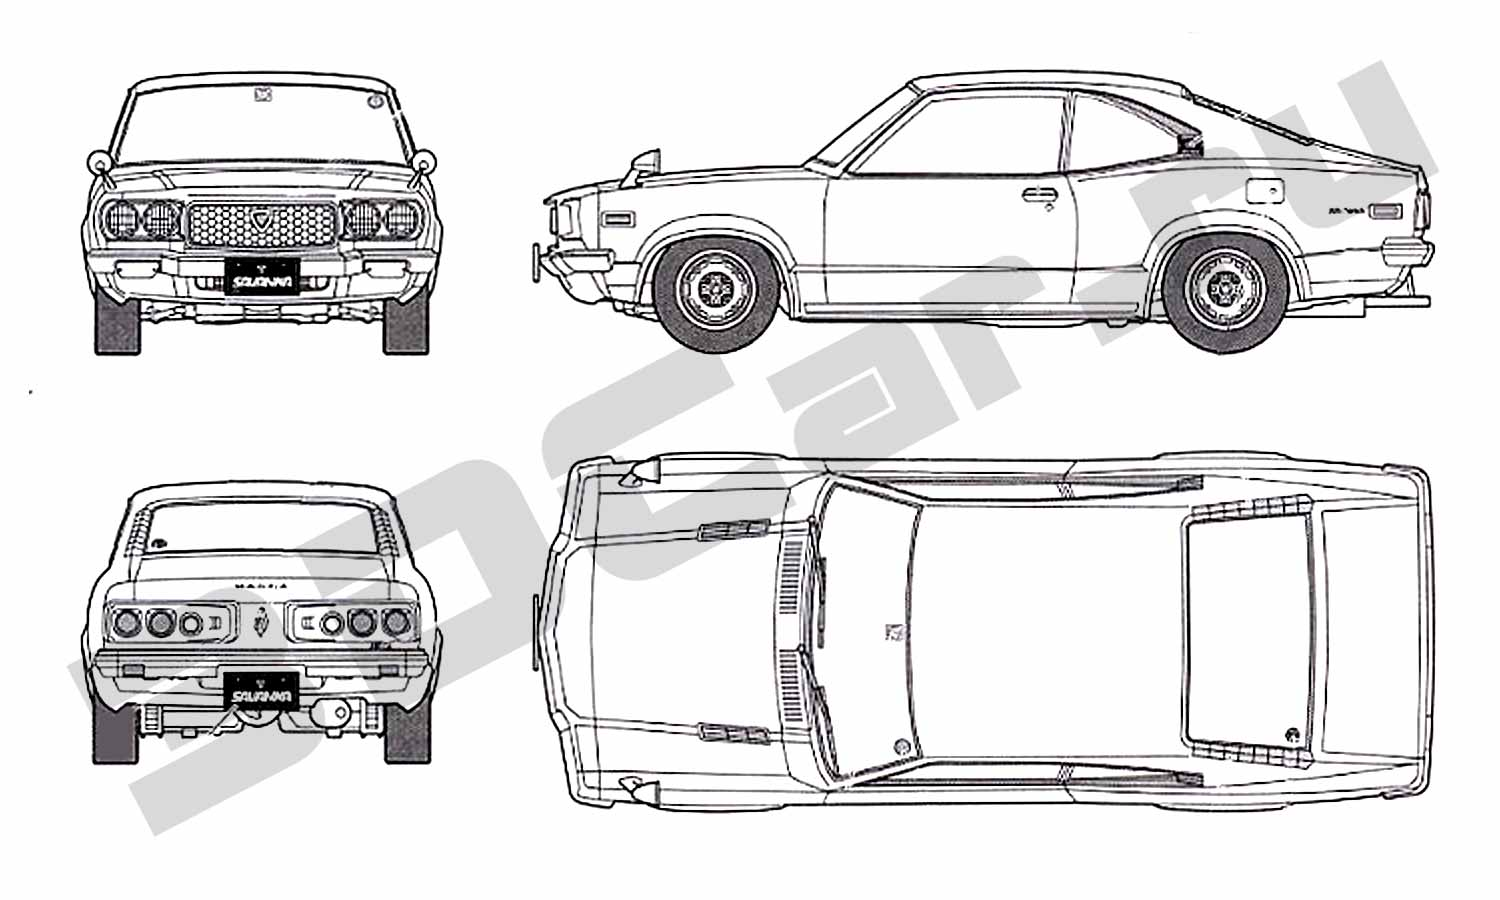 Blueprints Mazda Rx3 Savanna Gt 3dcar